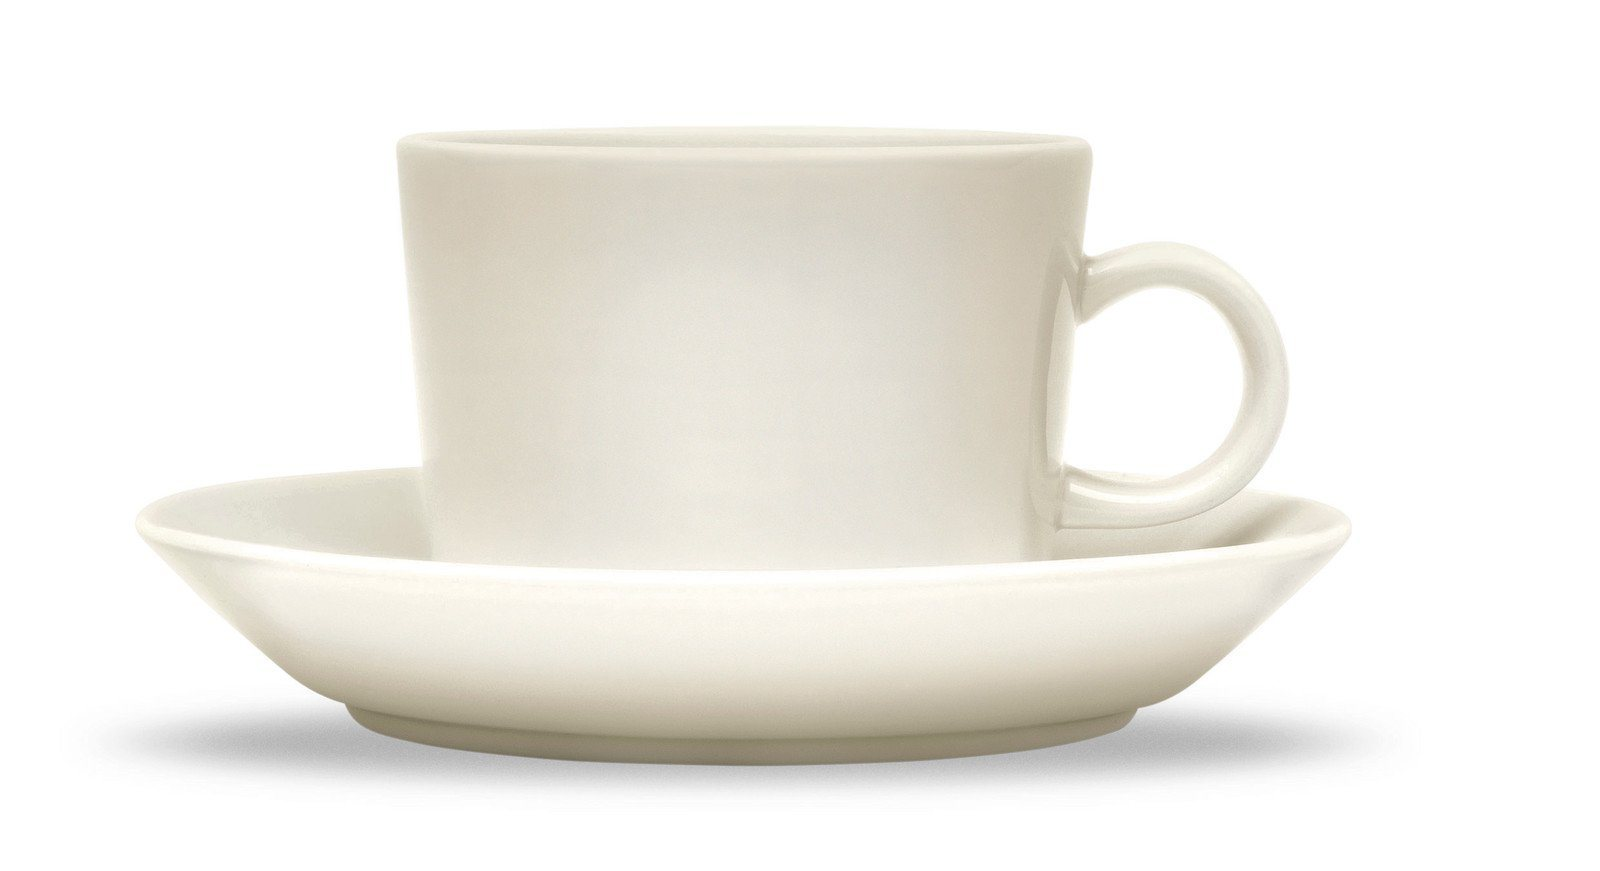 Iittala, Teema Teacup and Saucer, assorted sizes - sold separately, Teacup - White- Placewares